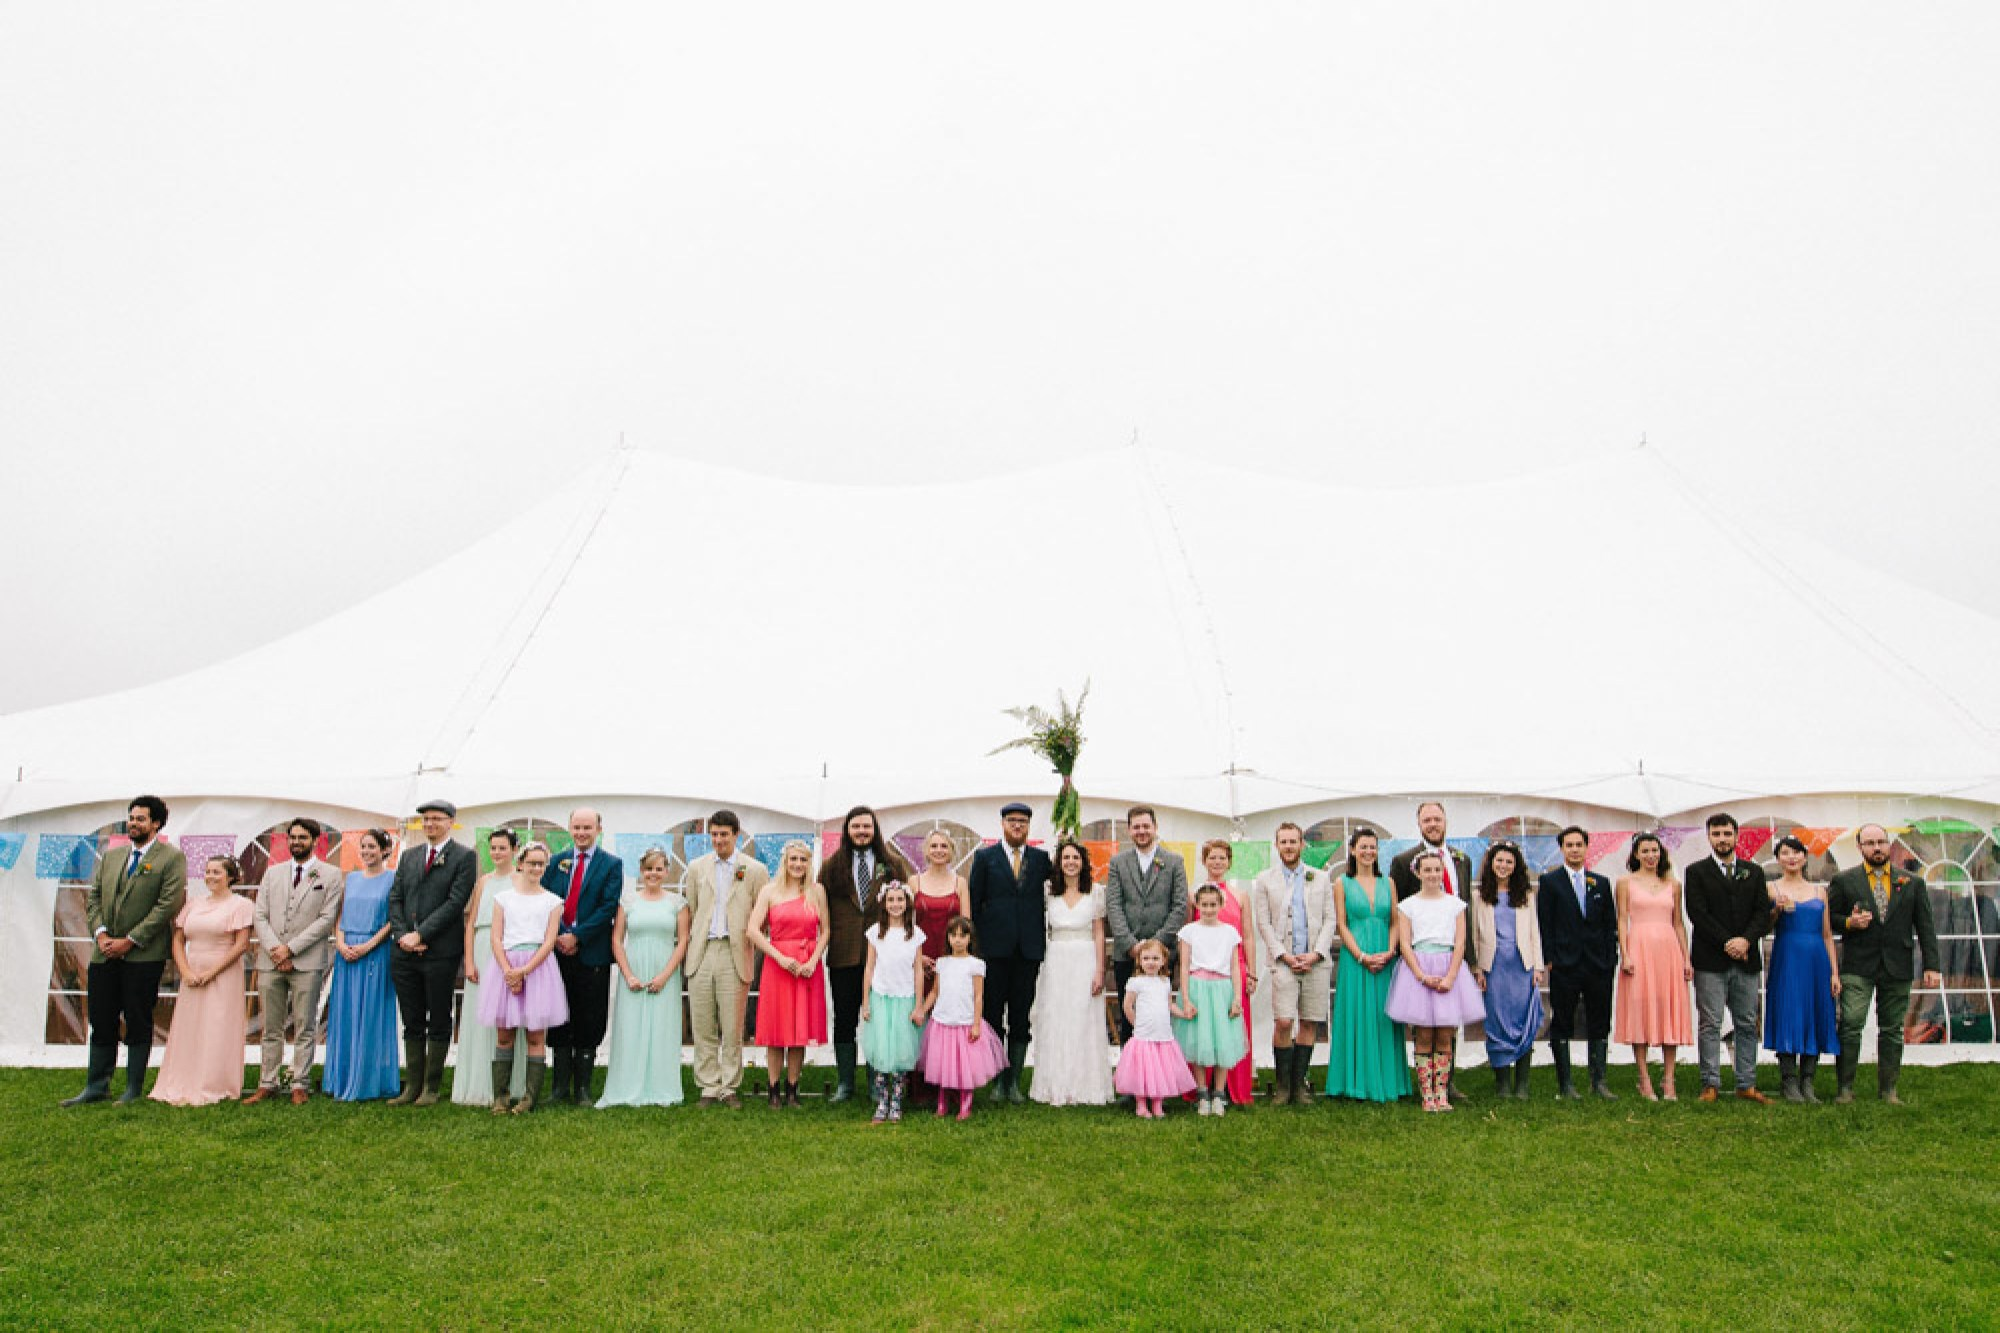 The biggest wedding party ever